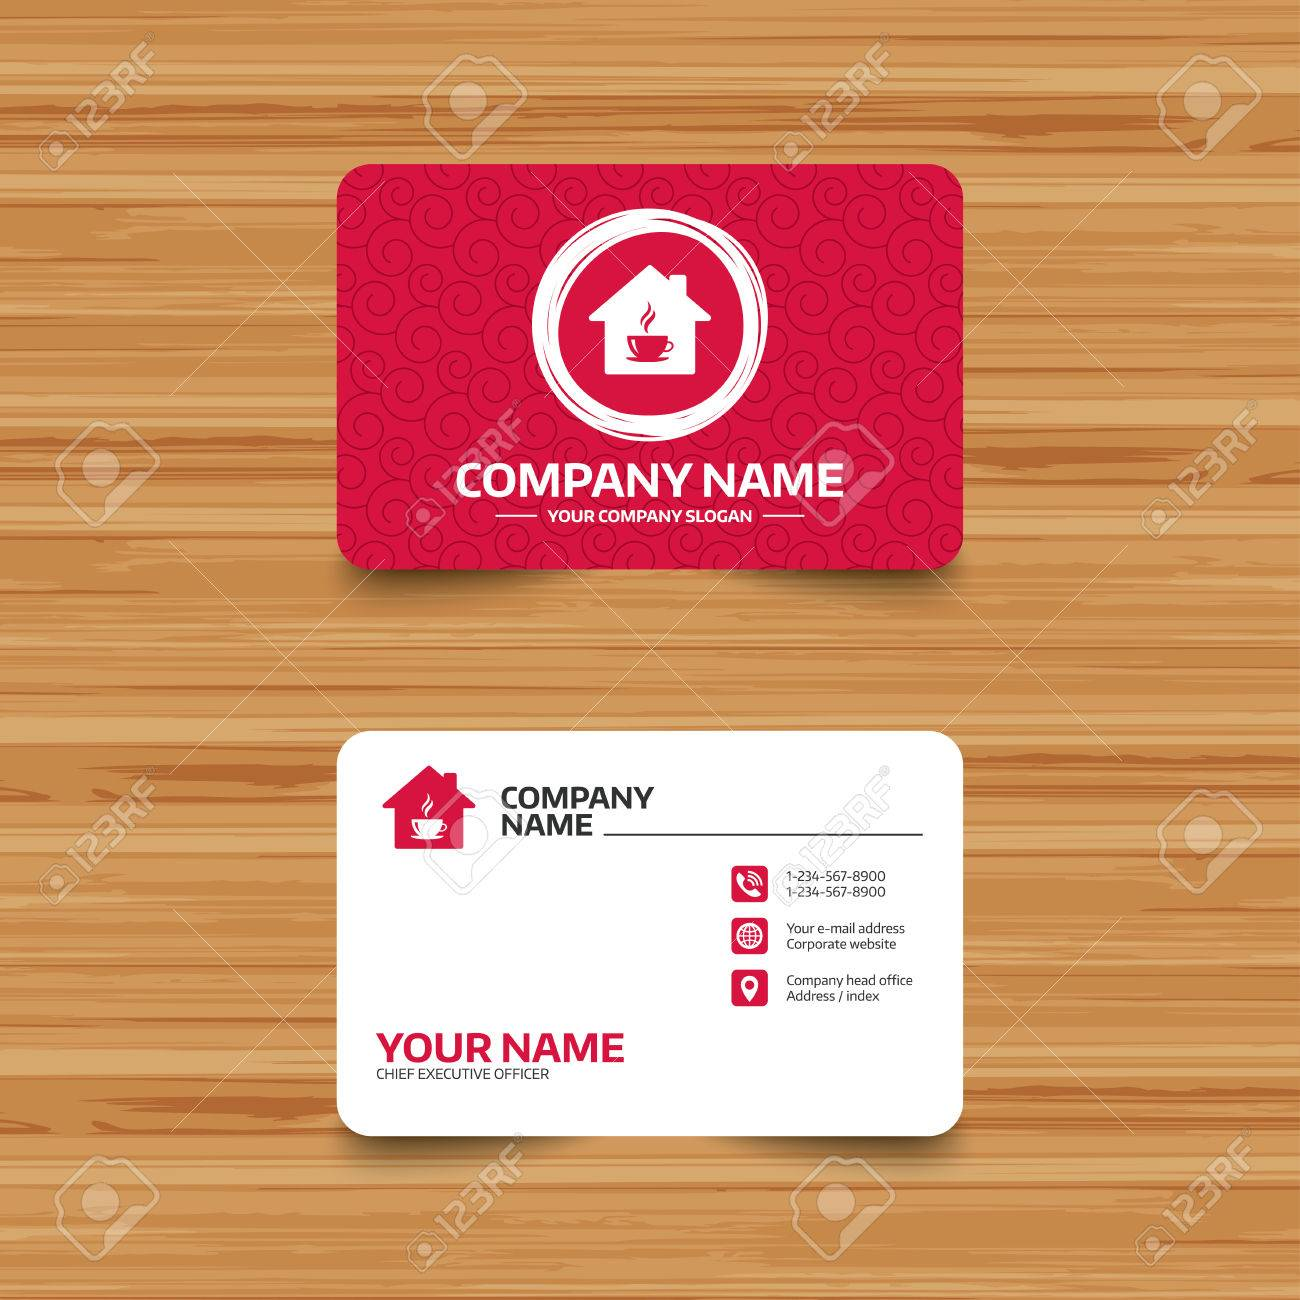 Business card template with texture coffee shop icon hot coffee business card template with texture coffee shop icon hot coffee cup sign hot wajeb Gallery